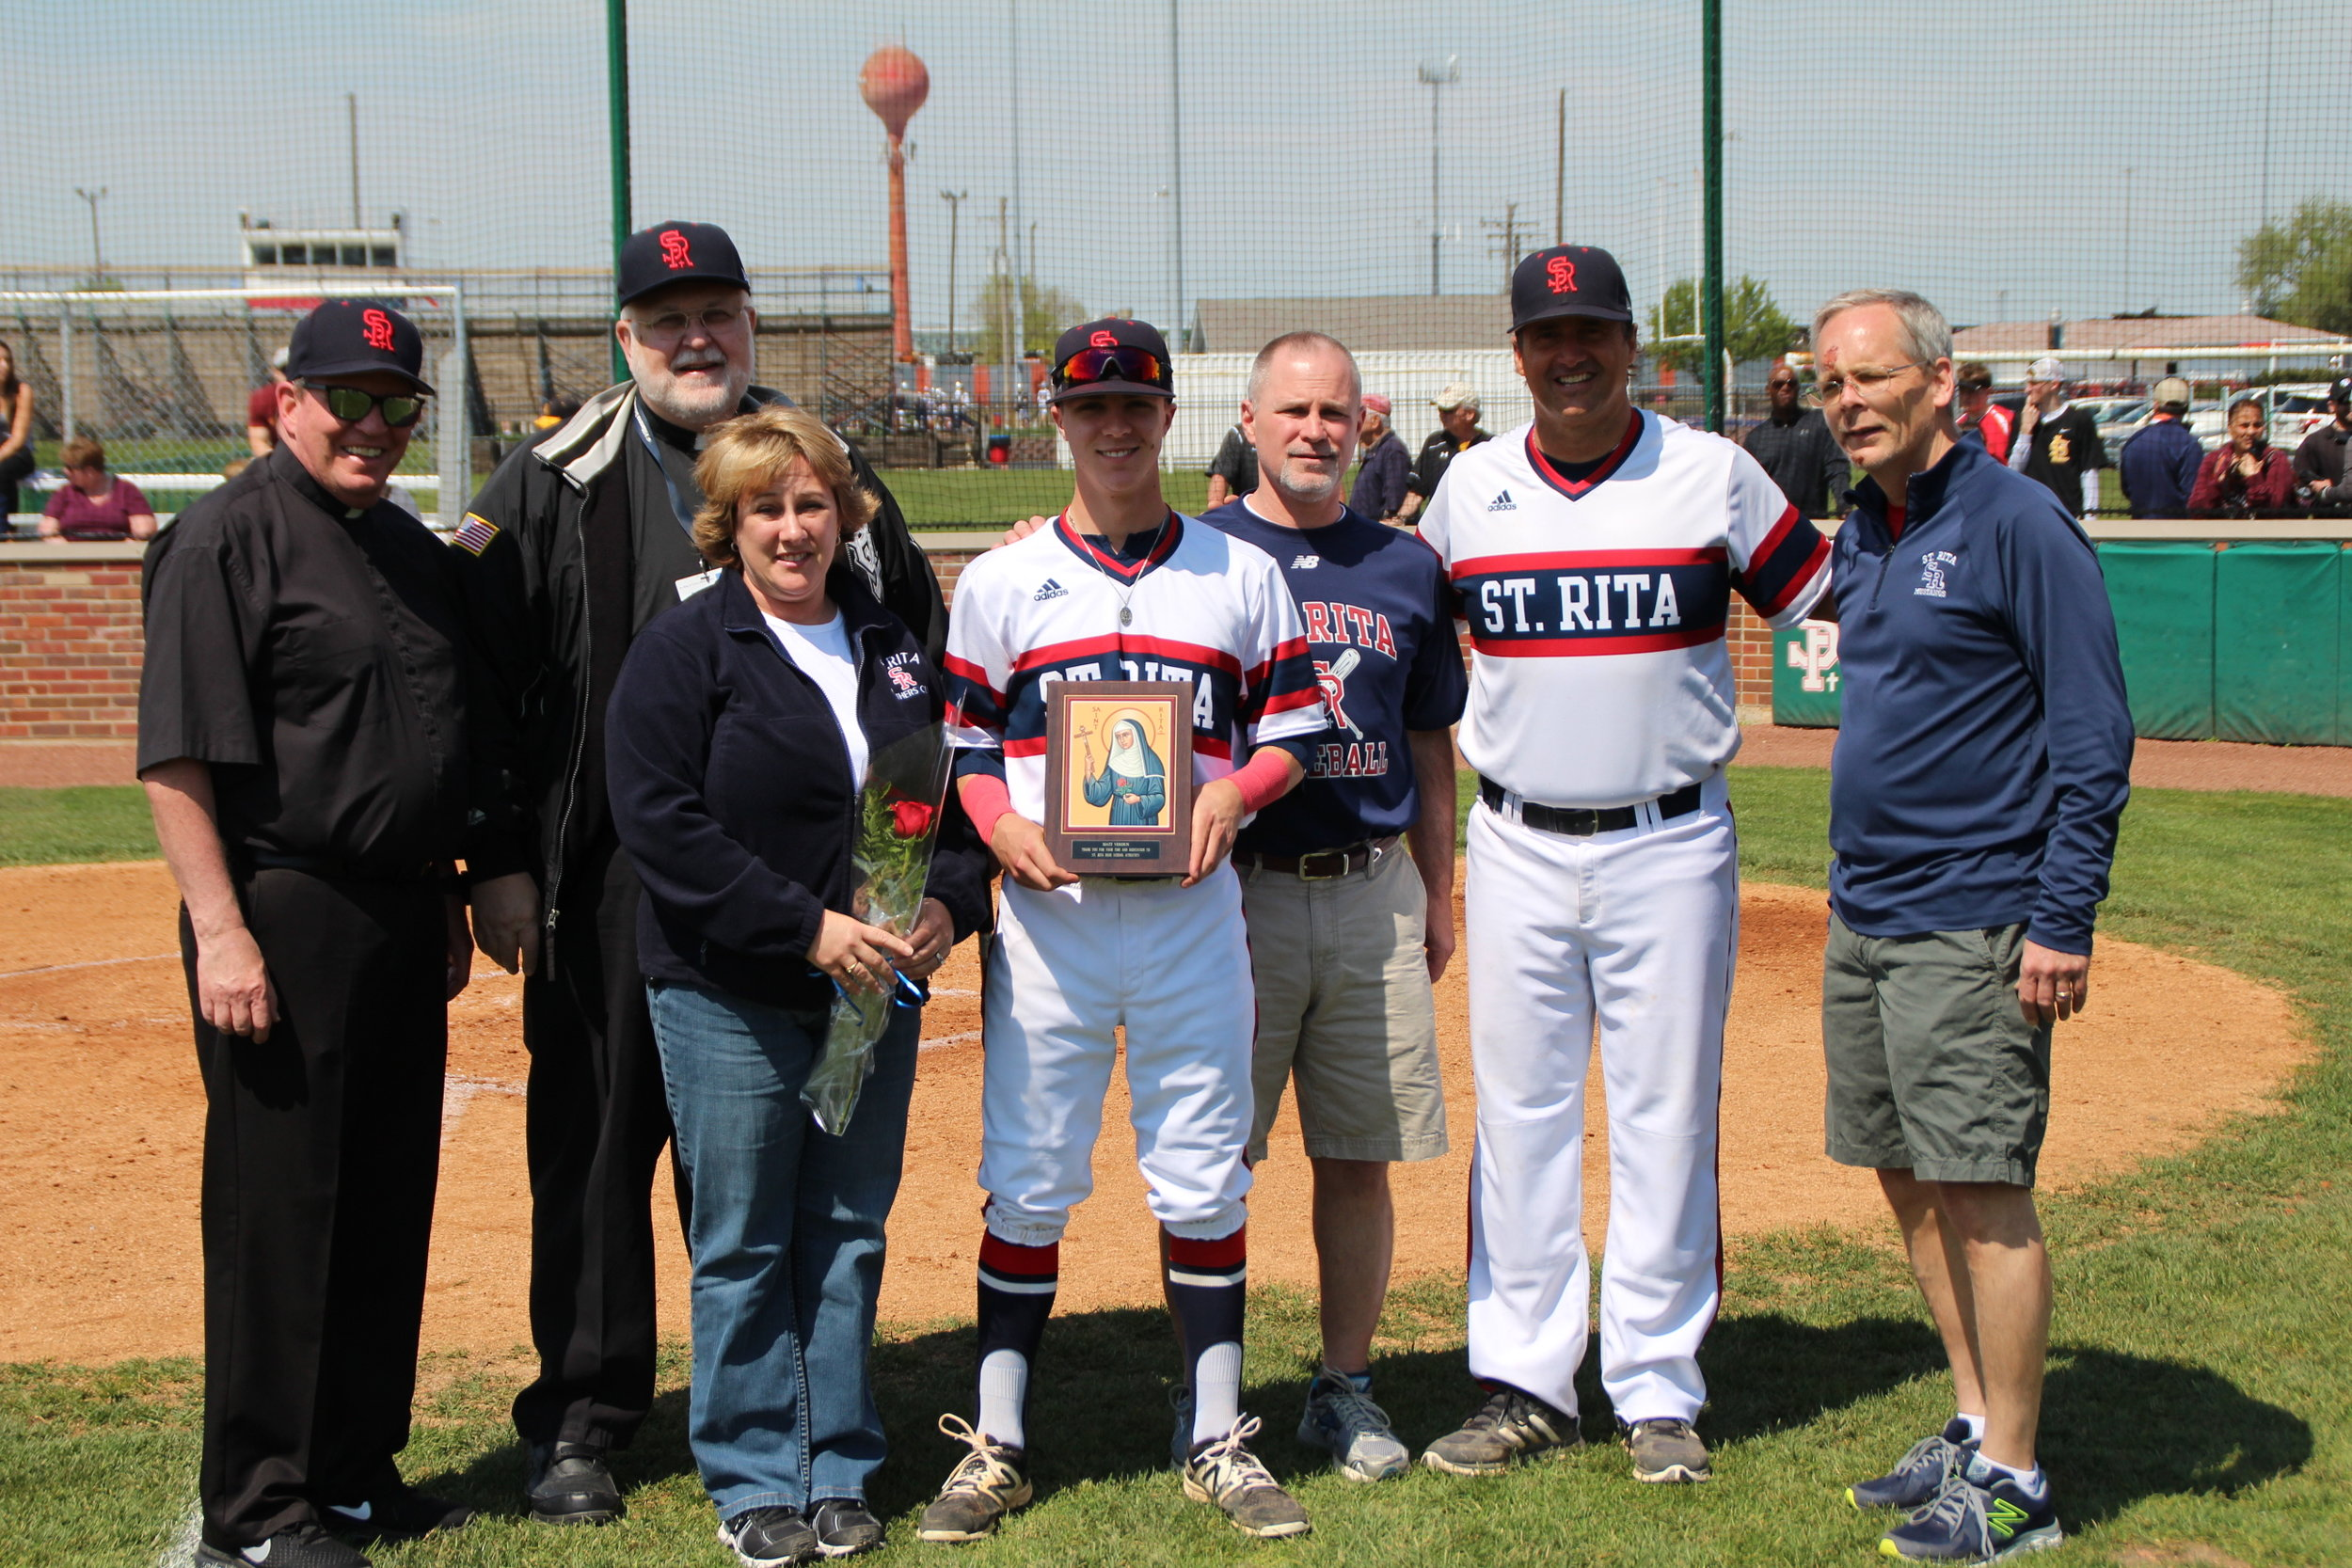 St. Rita senior Matt Verdun (center)